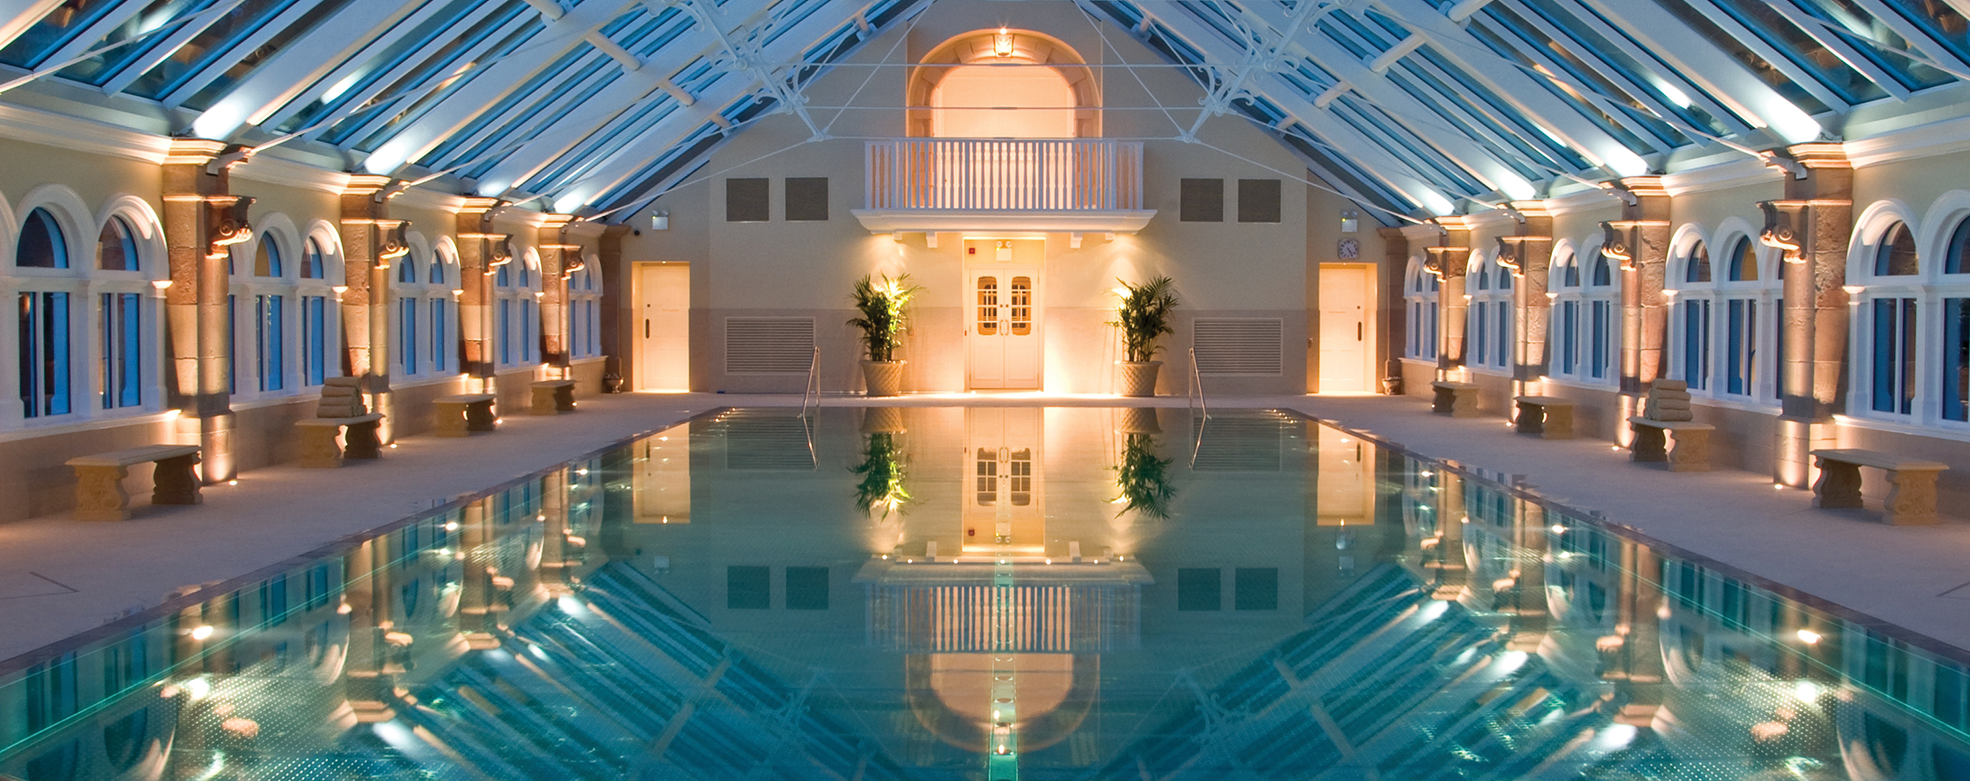 Skibo Castle - Display Energy Certificate - ESG Pool Ventilation & Heat Pump Specialist